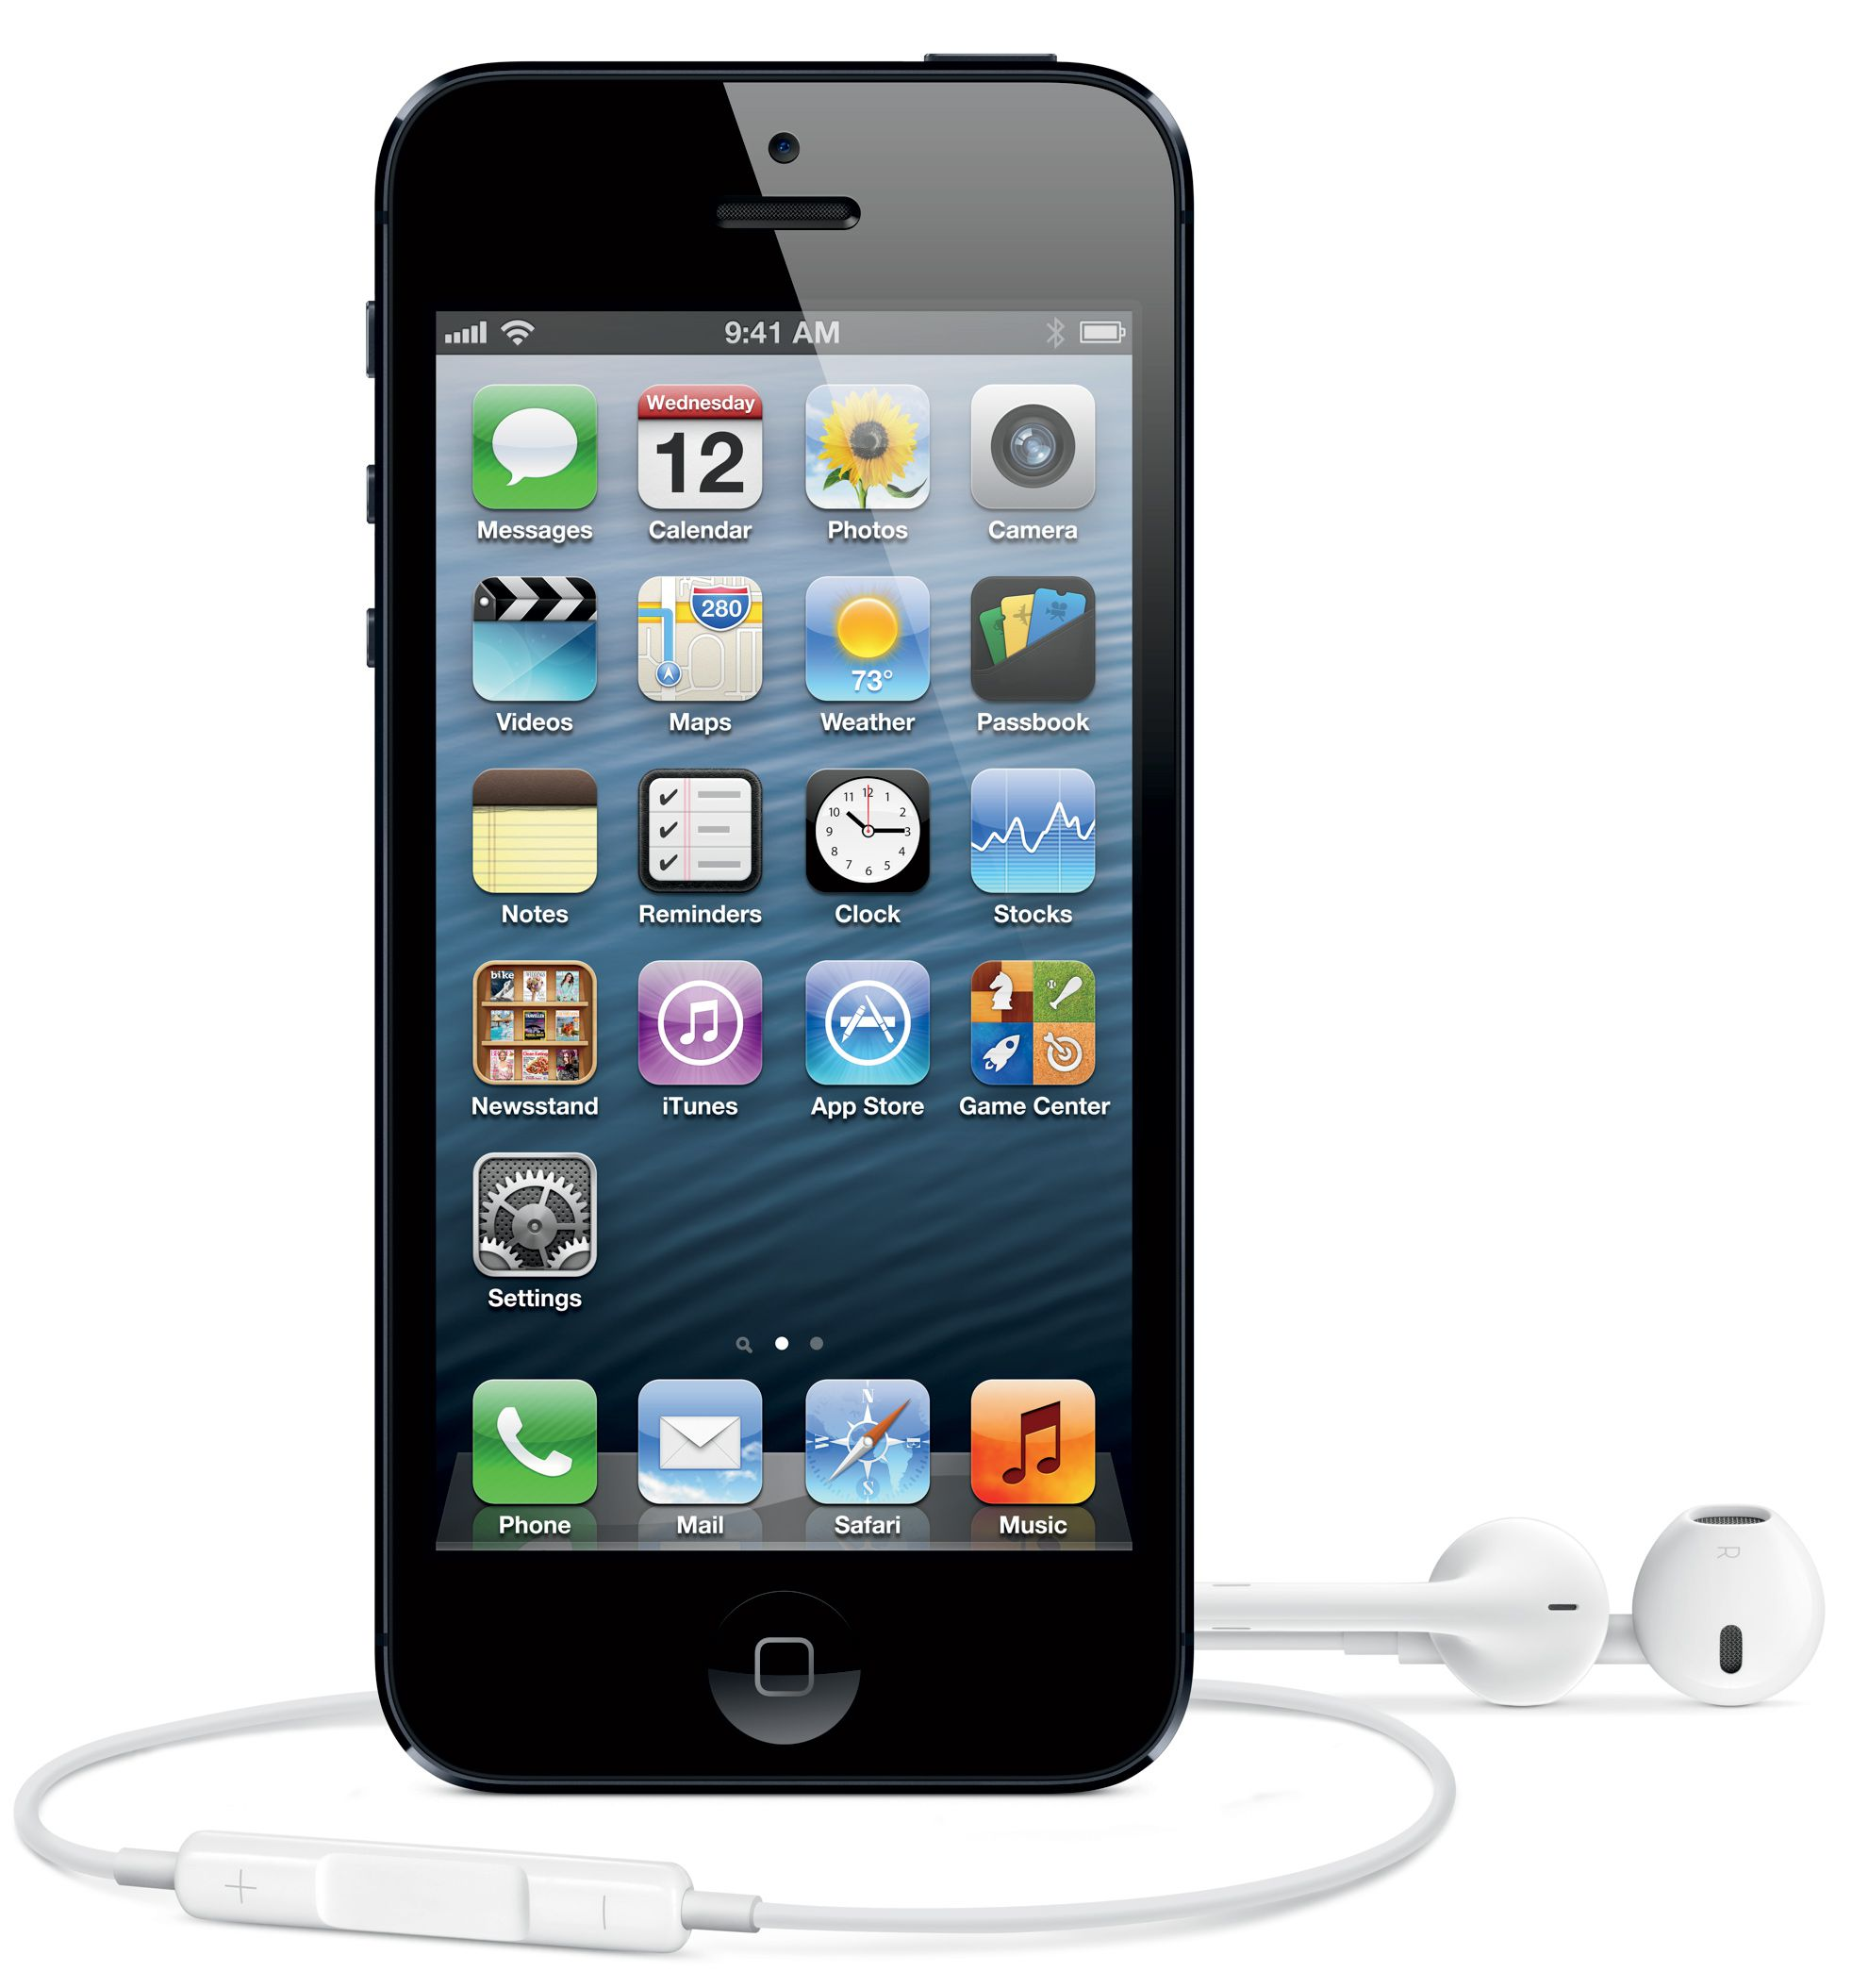 Prepaid telecom operator virgin mobile usa will soon start selling - 19 Questions And Answers About The Iphone 5